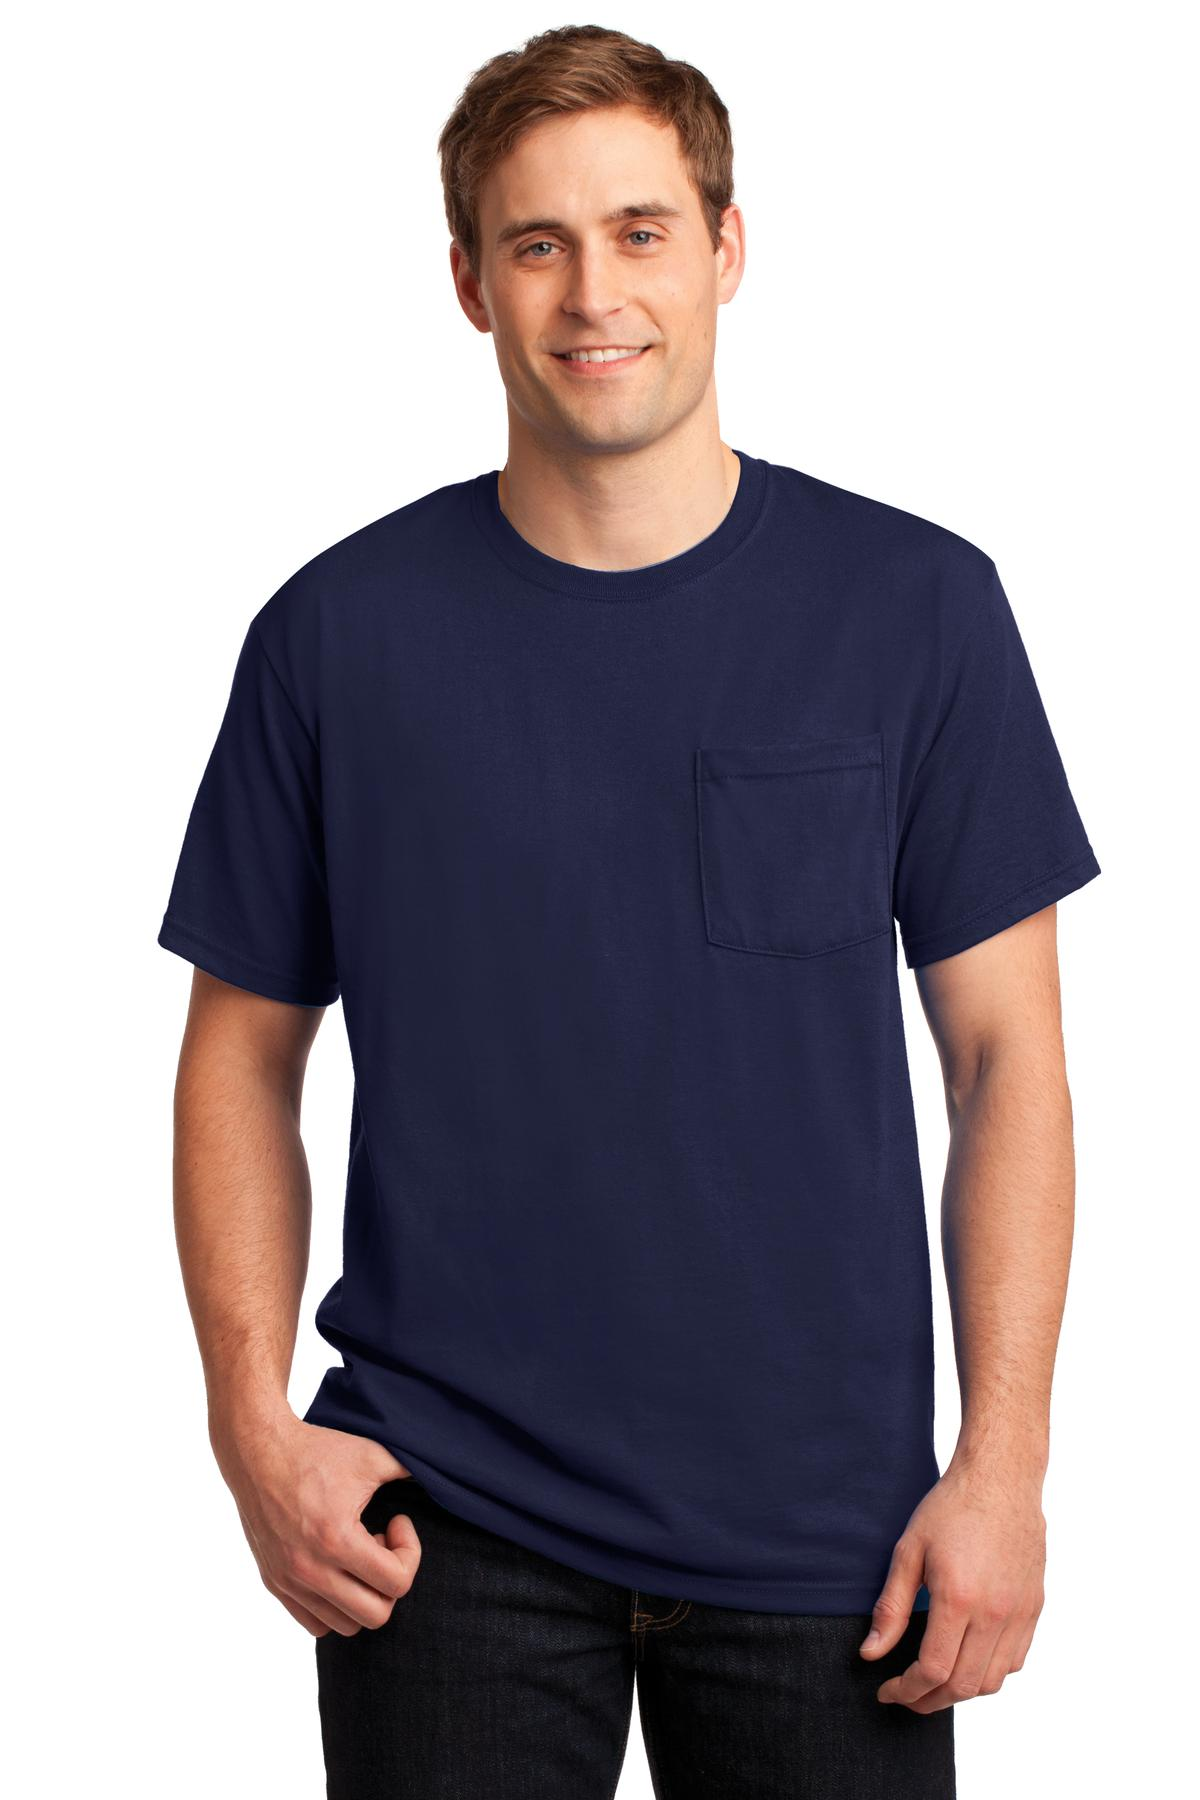 JERZEES ®  -  Dri-Power ®  50/50 Cotton/Poly Pocket T-Shirt.  29MP - Navy